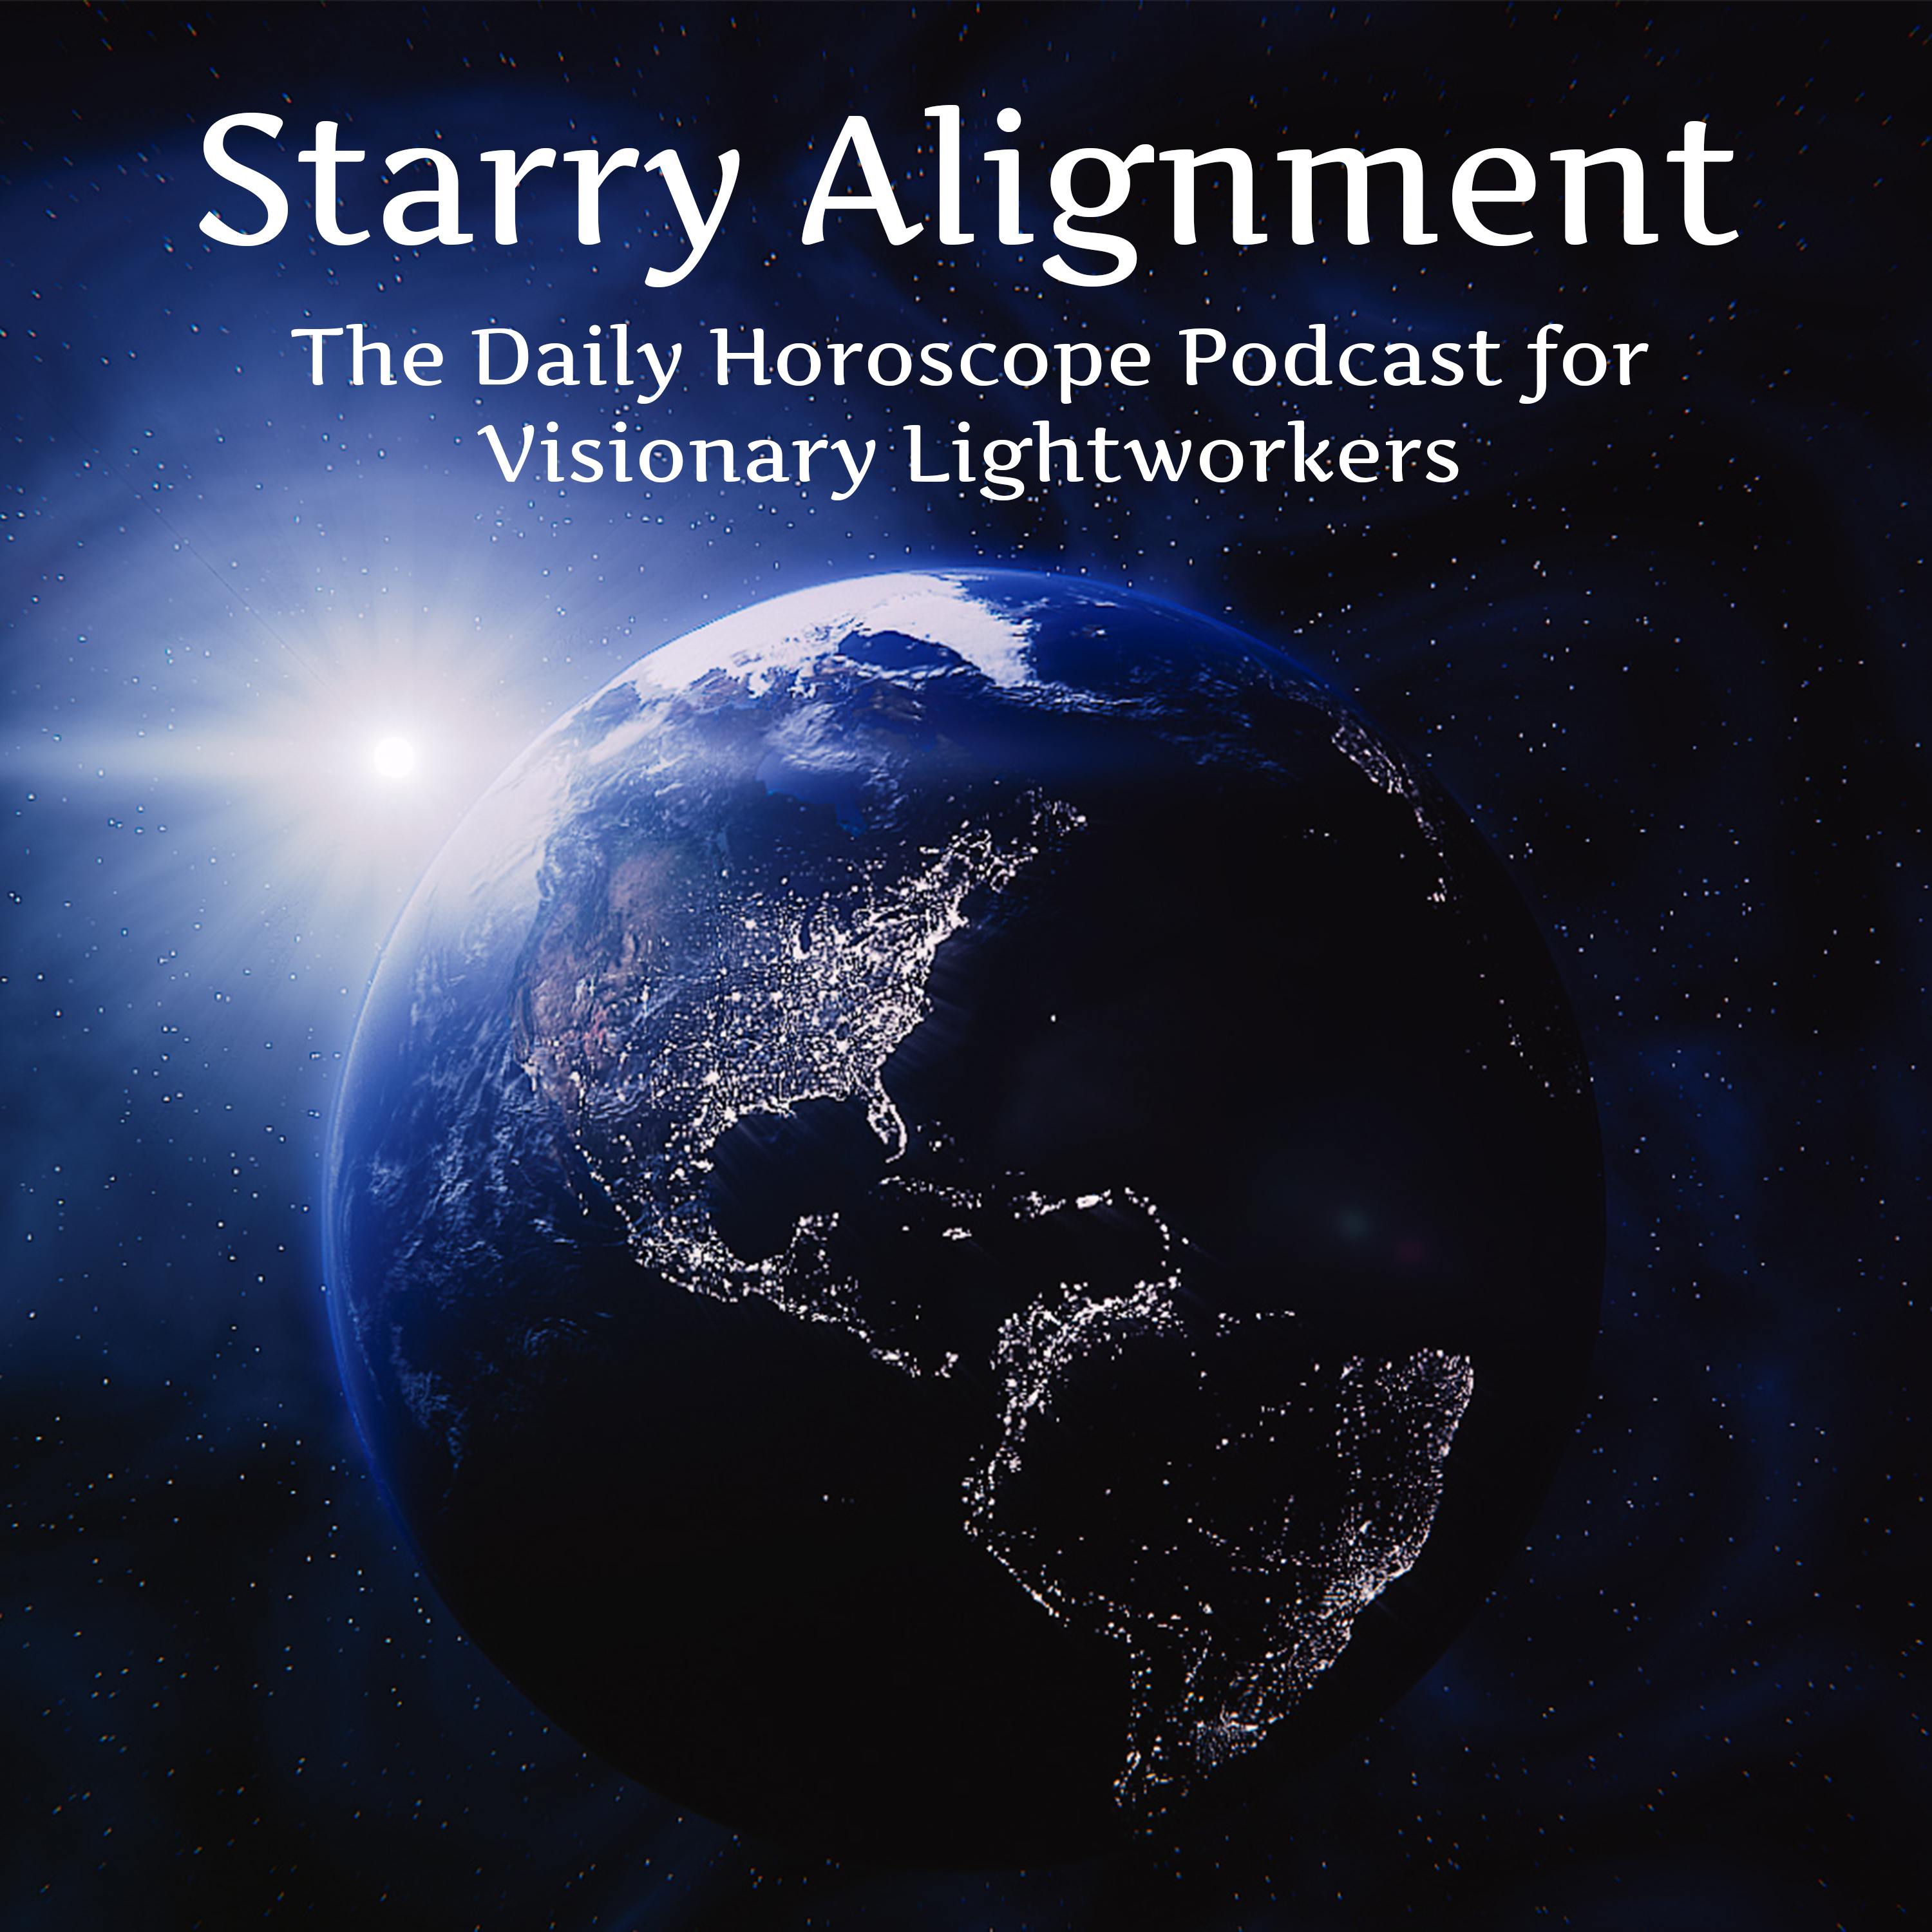 Starry Alignment: The Daily Horoscope Podcast for Visionary Lightworkers